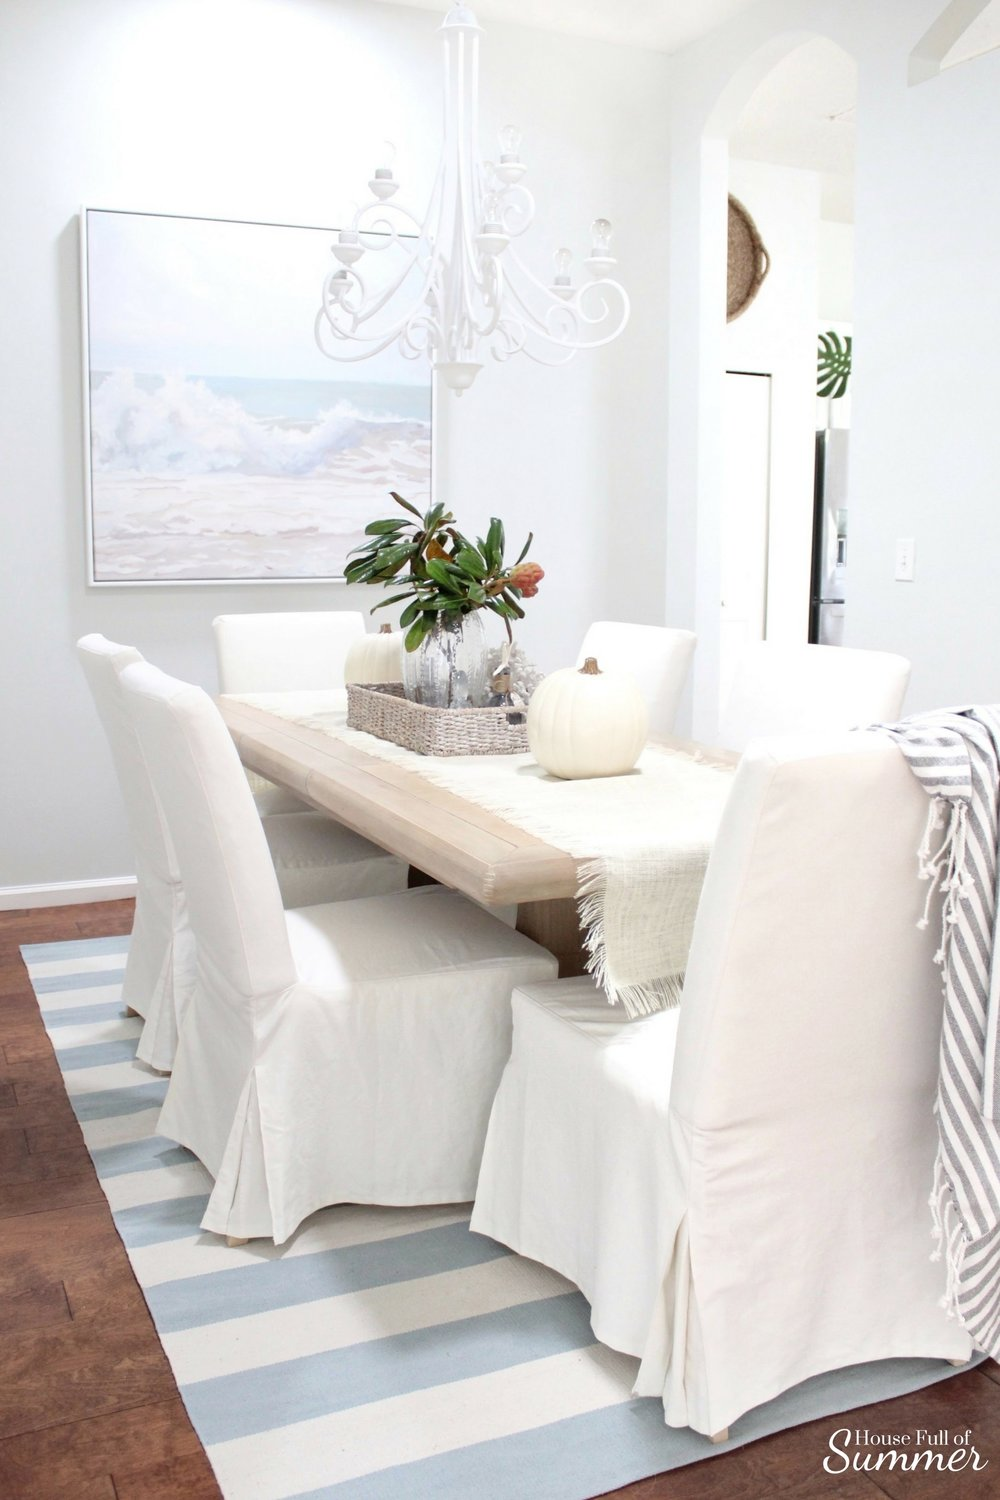 House Full of Summer: Fall Home Tour Blog Hop - Cozy, Coastal, Chic  Dining Room, pottery barn style, beachy decor, white slipcovered chairs, ocean beach painting, striped rug, flat weave, table runner, fall table ideas, ballard designs, ikea chairs, centerpiece, white pumpkins, neutral fall decor